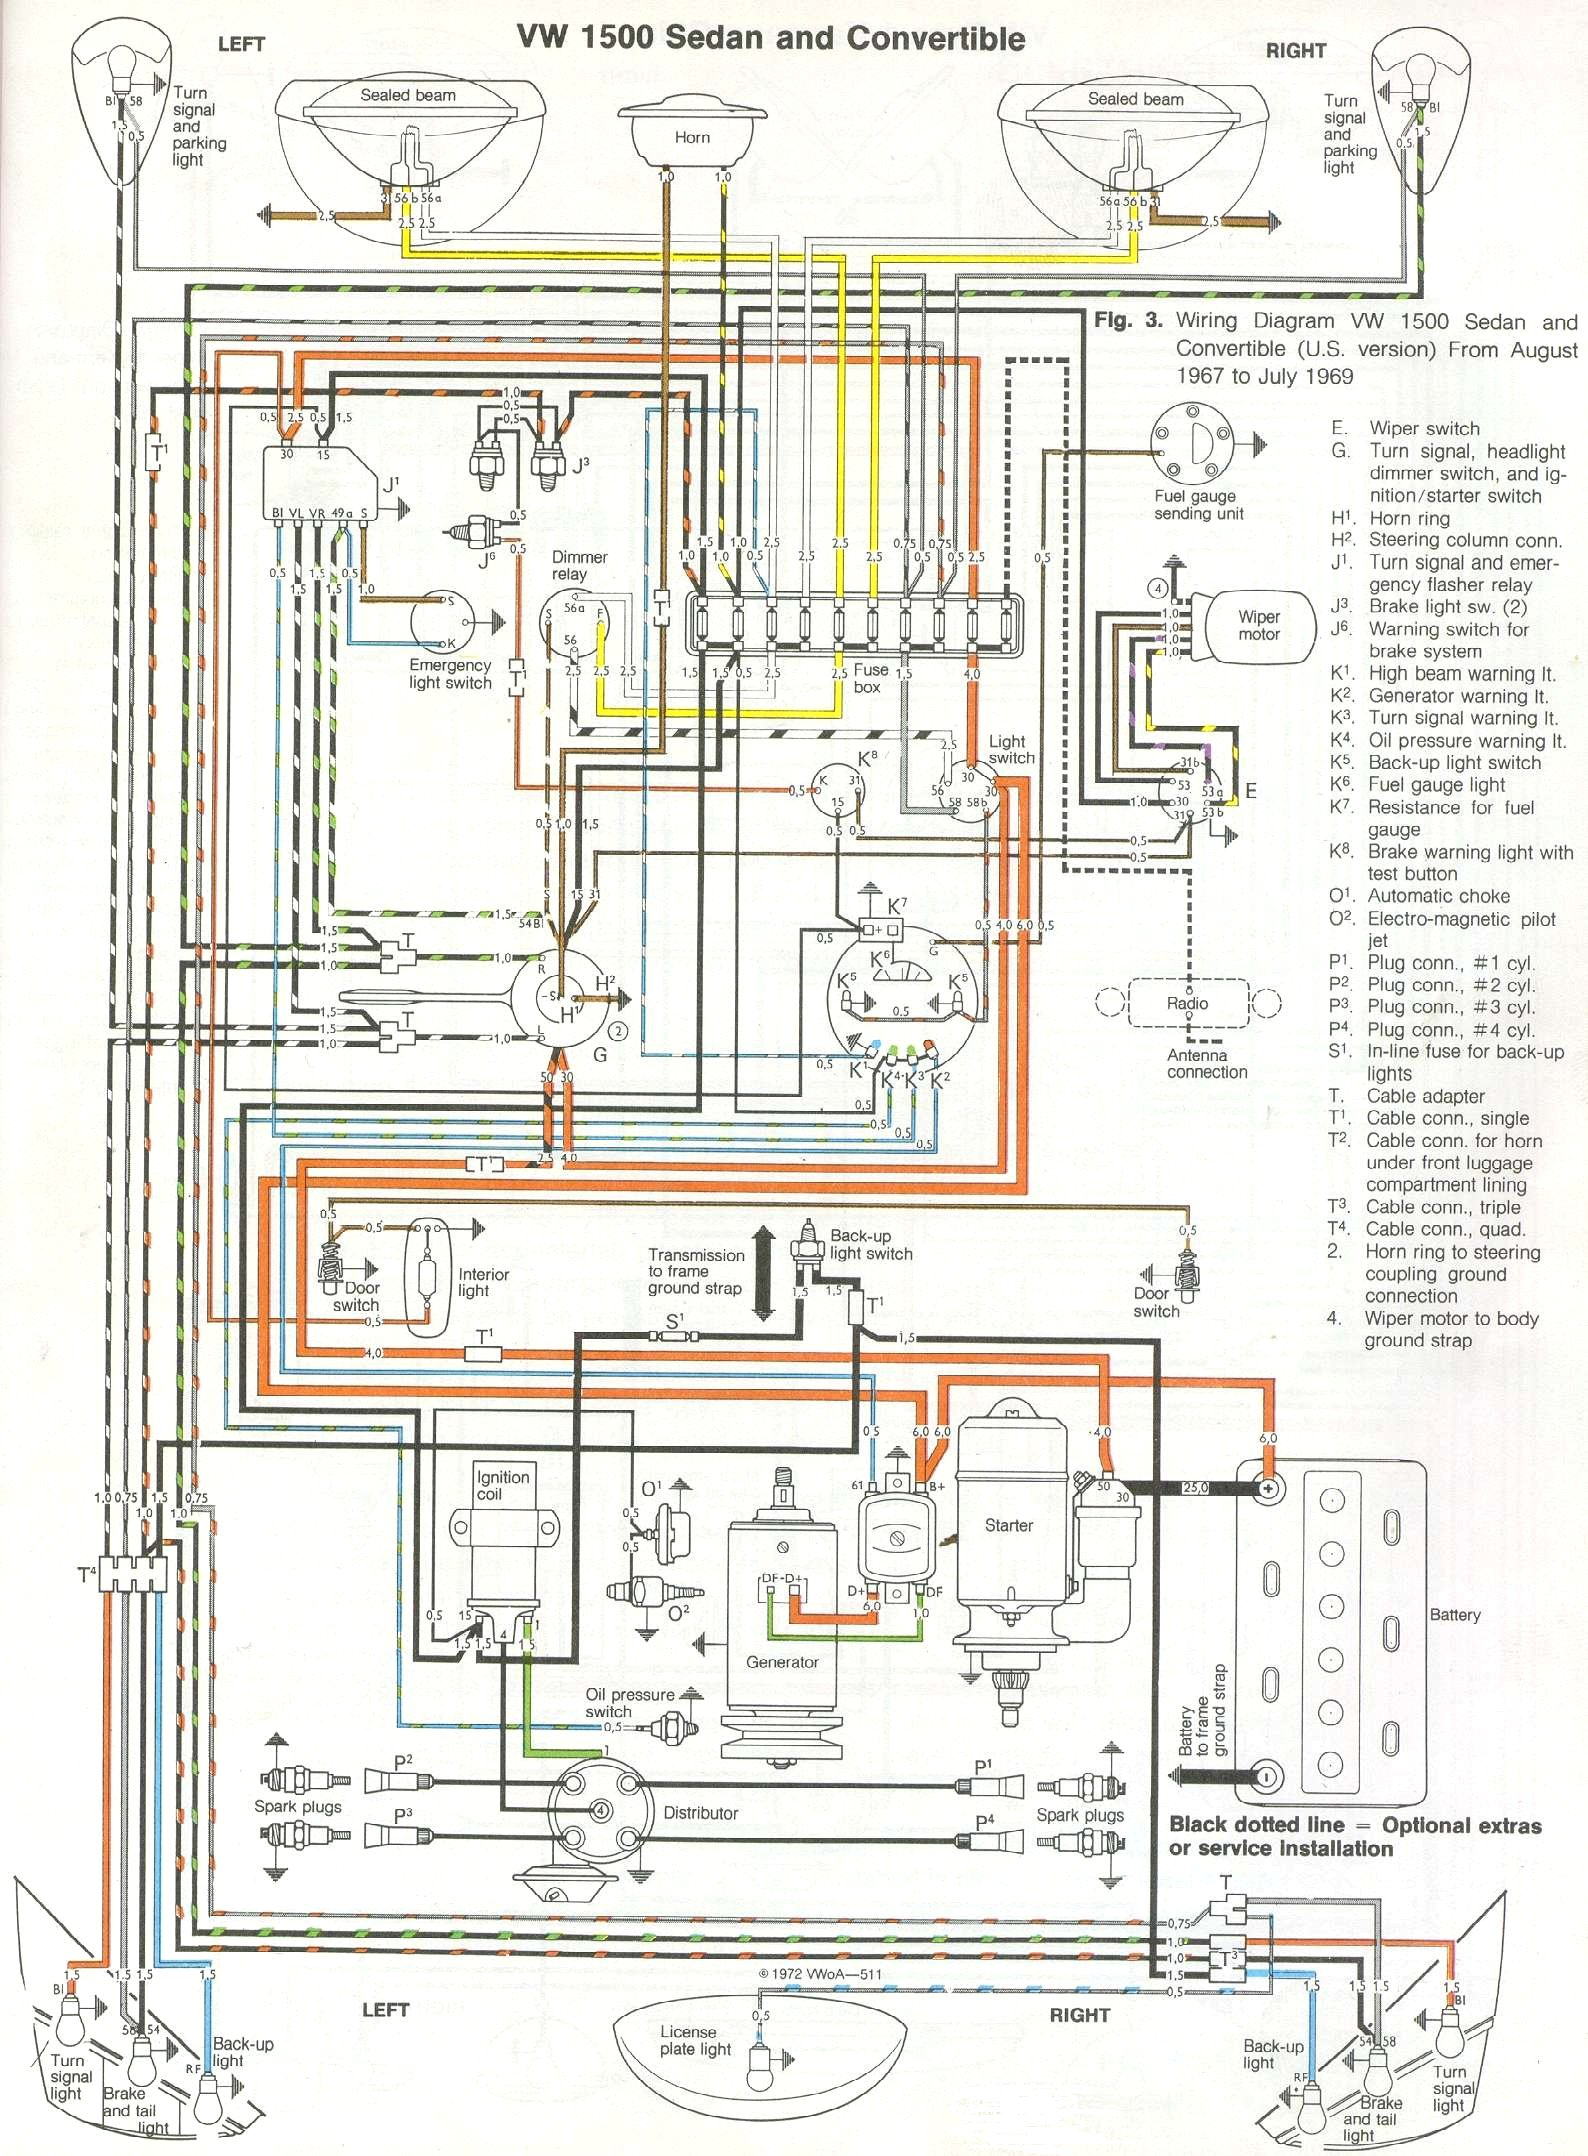 bug_6869 1973 vw beetle wiring diagram 1971 vw beetle wiring diagram 68 VW Wiring Diagram at eliteediting.co